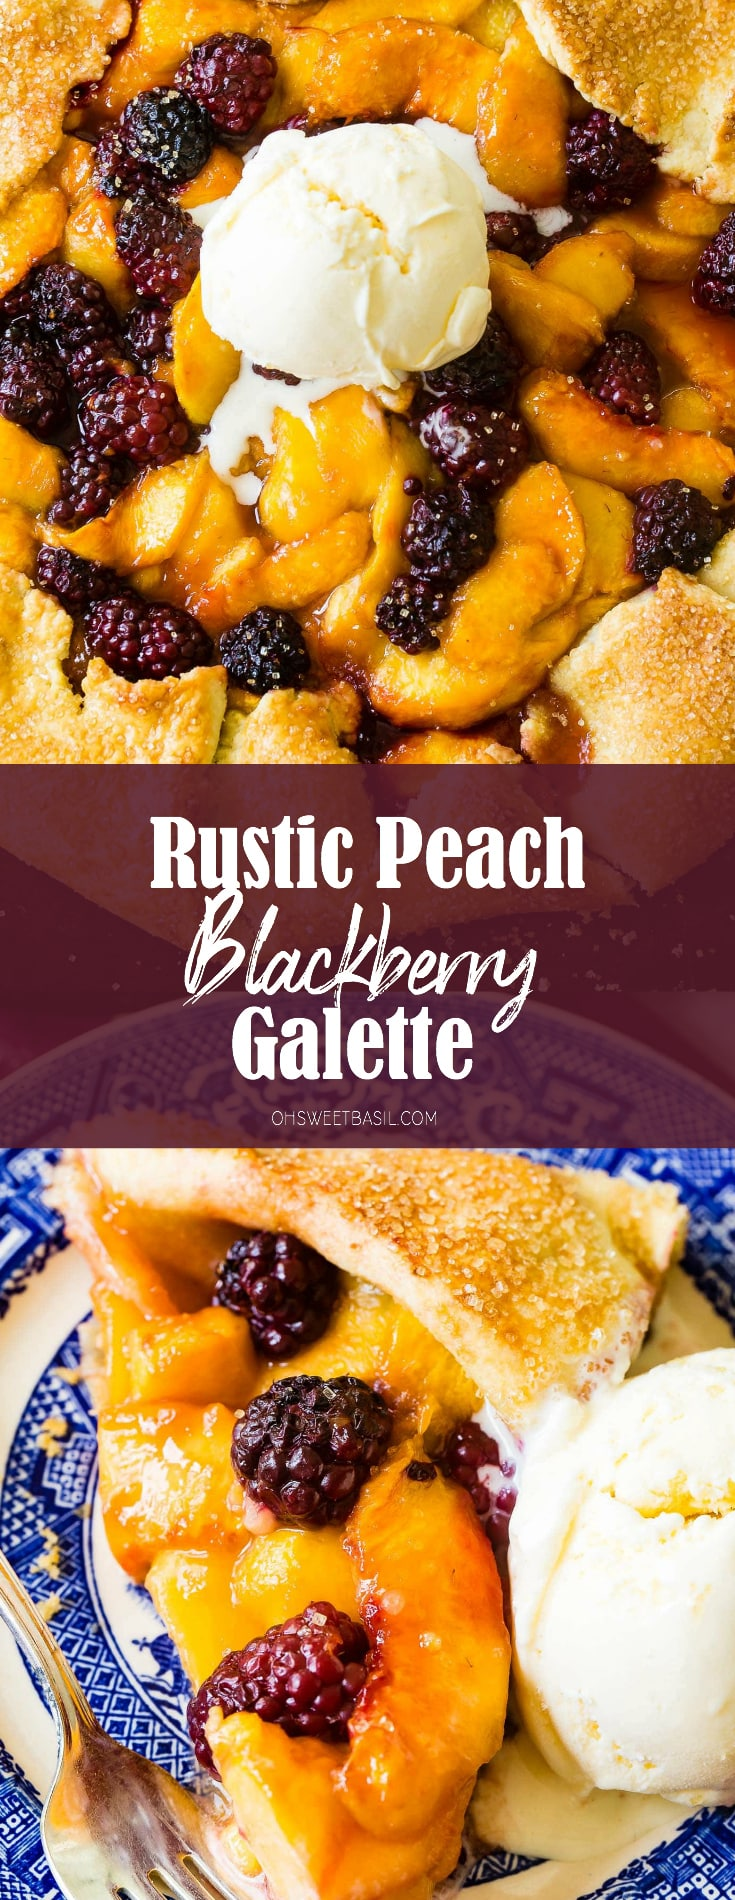 a rustic pie made on a pan is a galette. It's full of peach slices and blackberries with a pie crust!